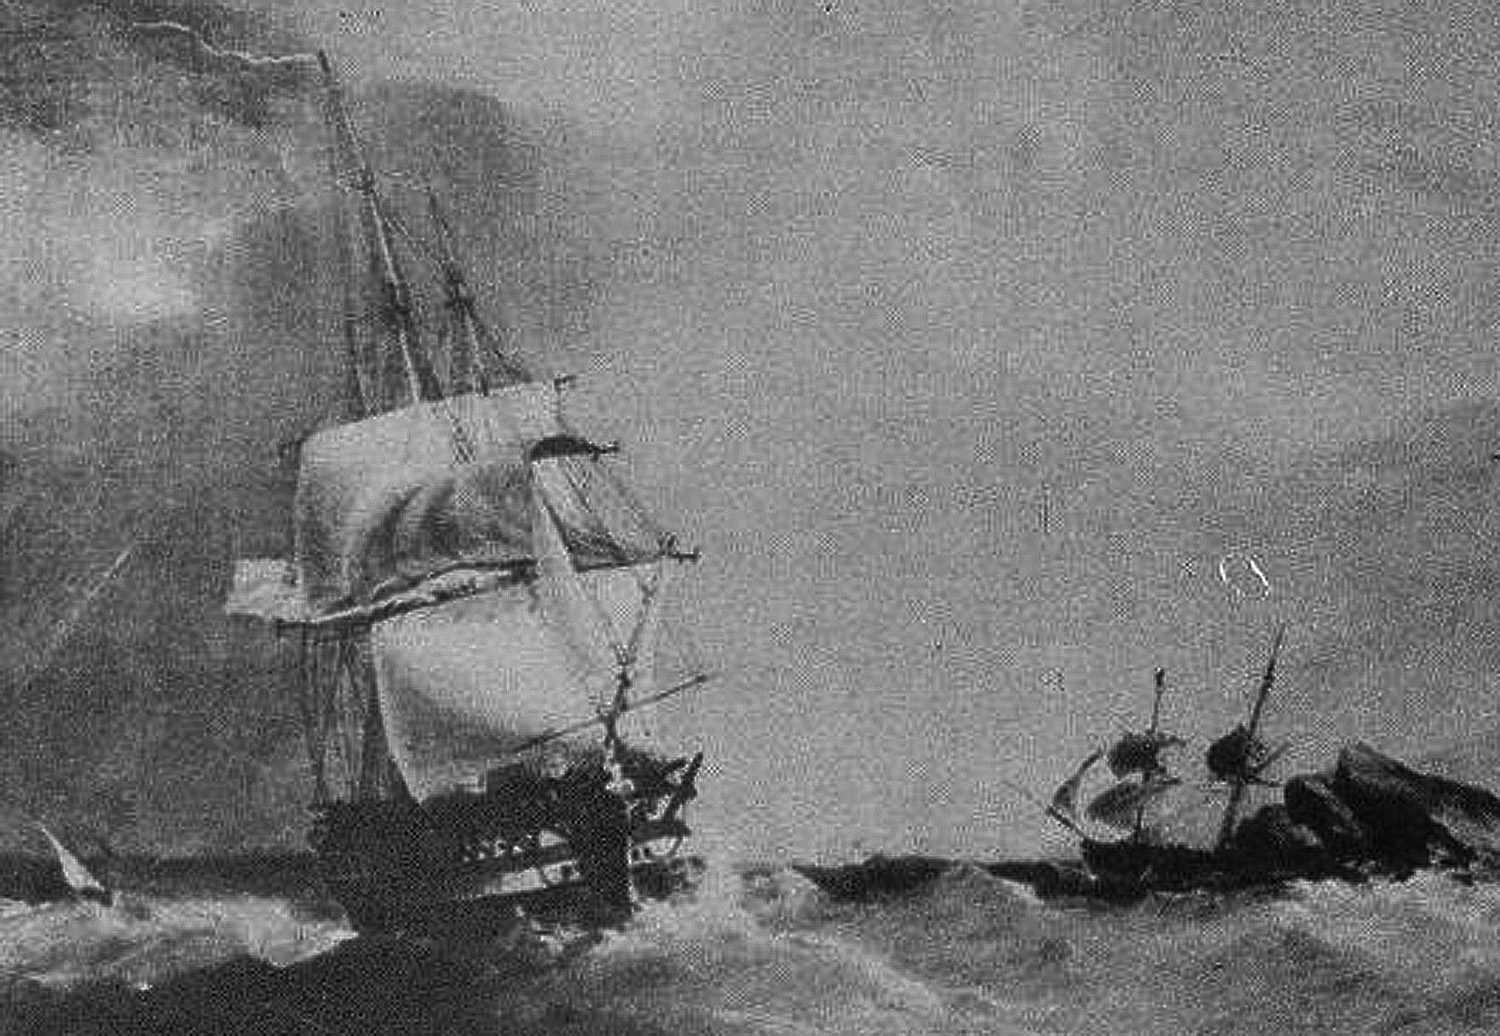 USS Franklin rounding Portovenere near La Spezia in about 1819